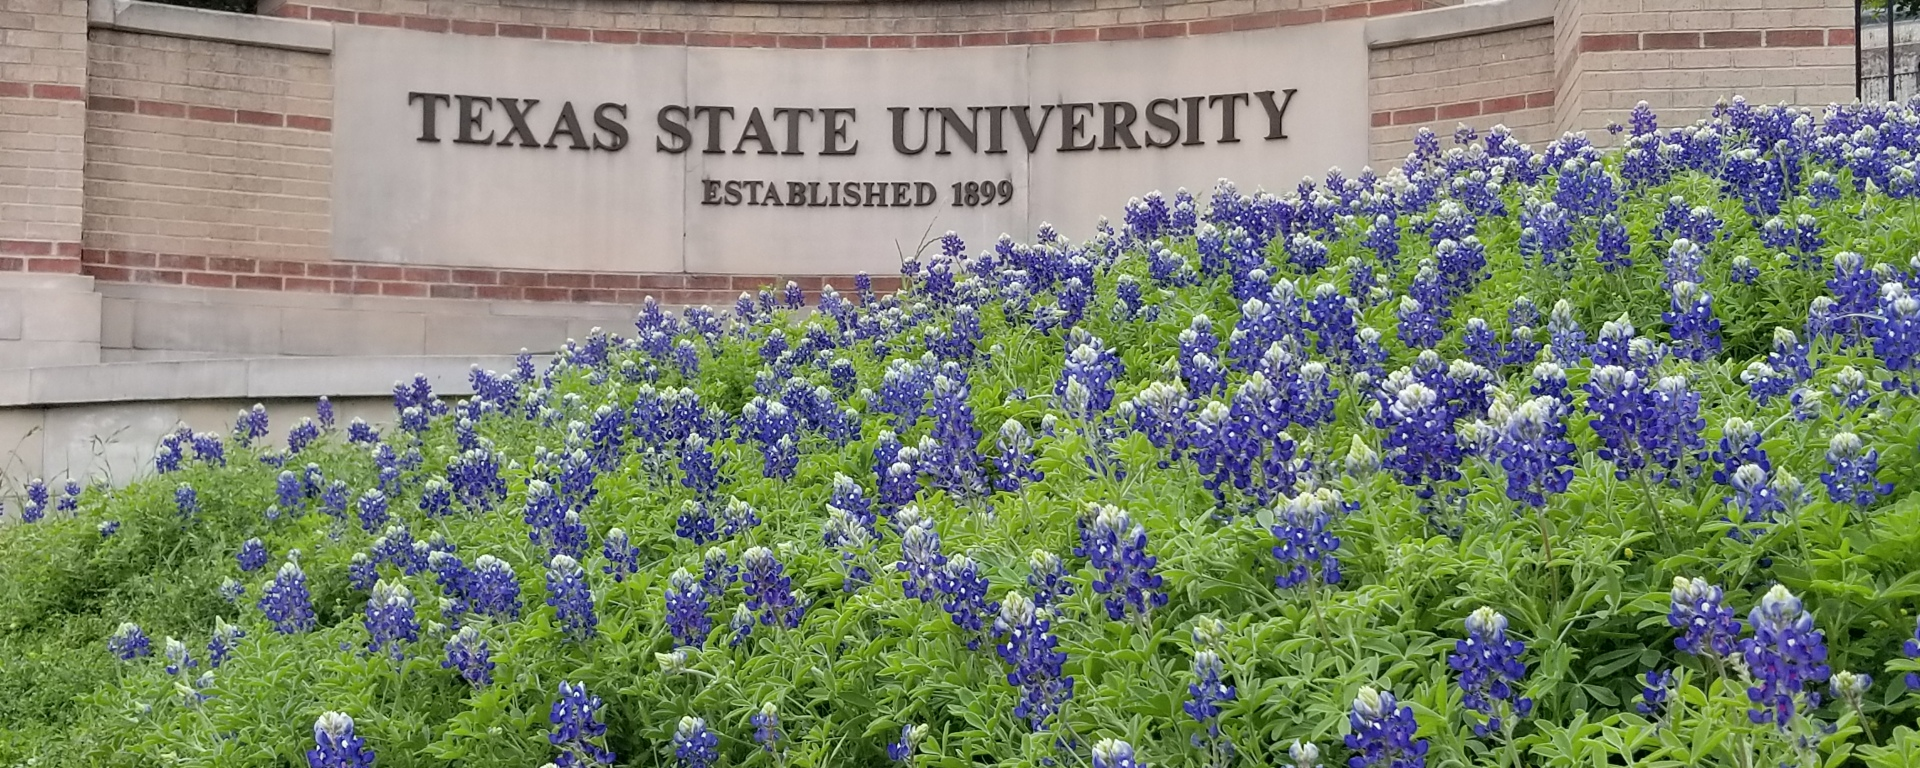 Blue flowers in front of a Texas State University sign